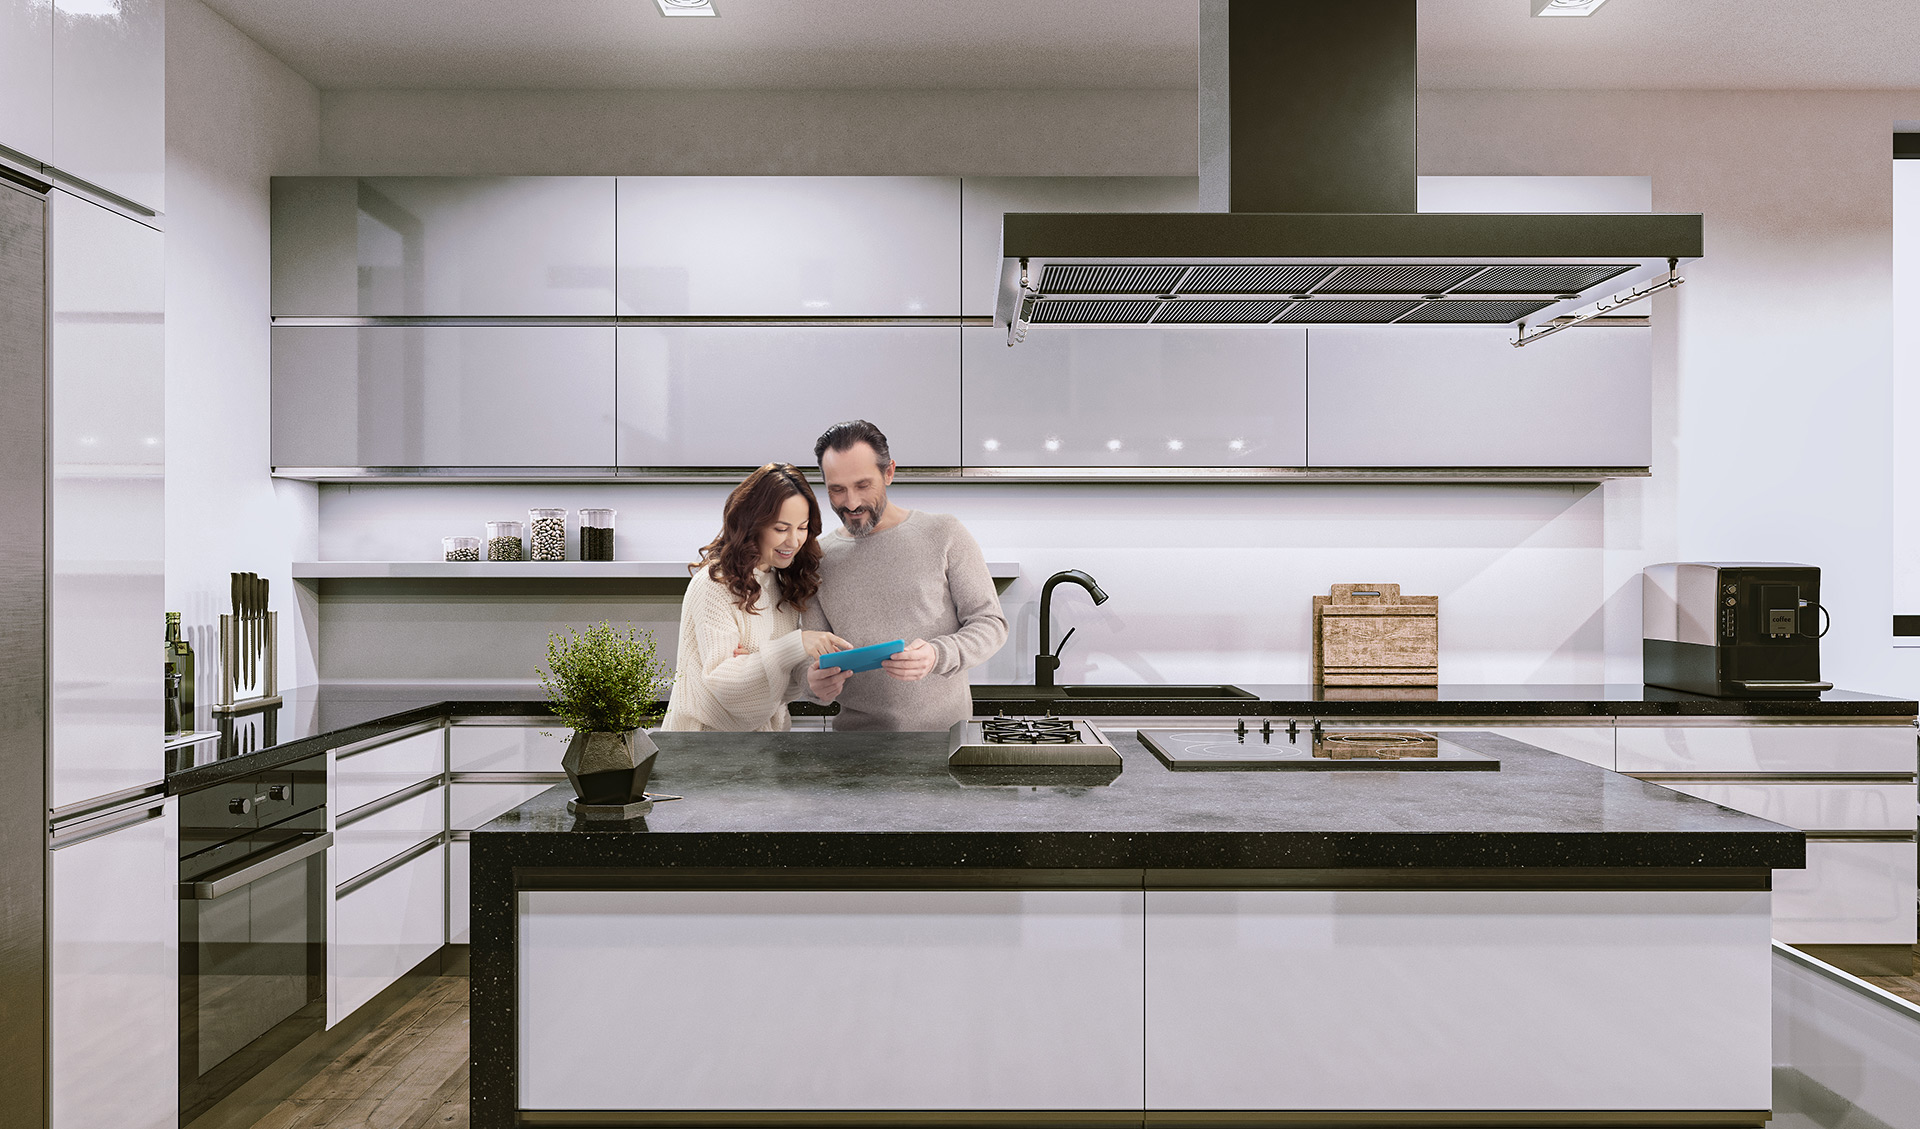 Interior Rendering Kitchen With People